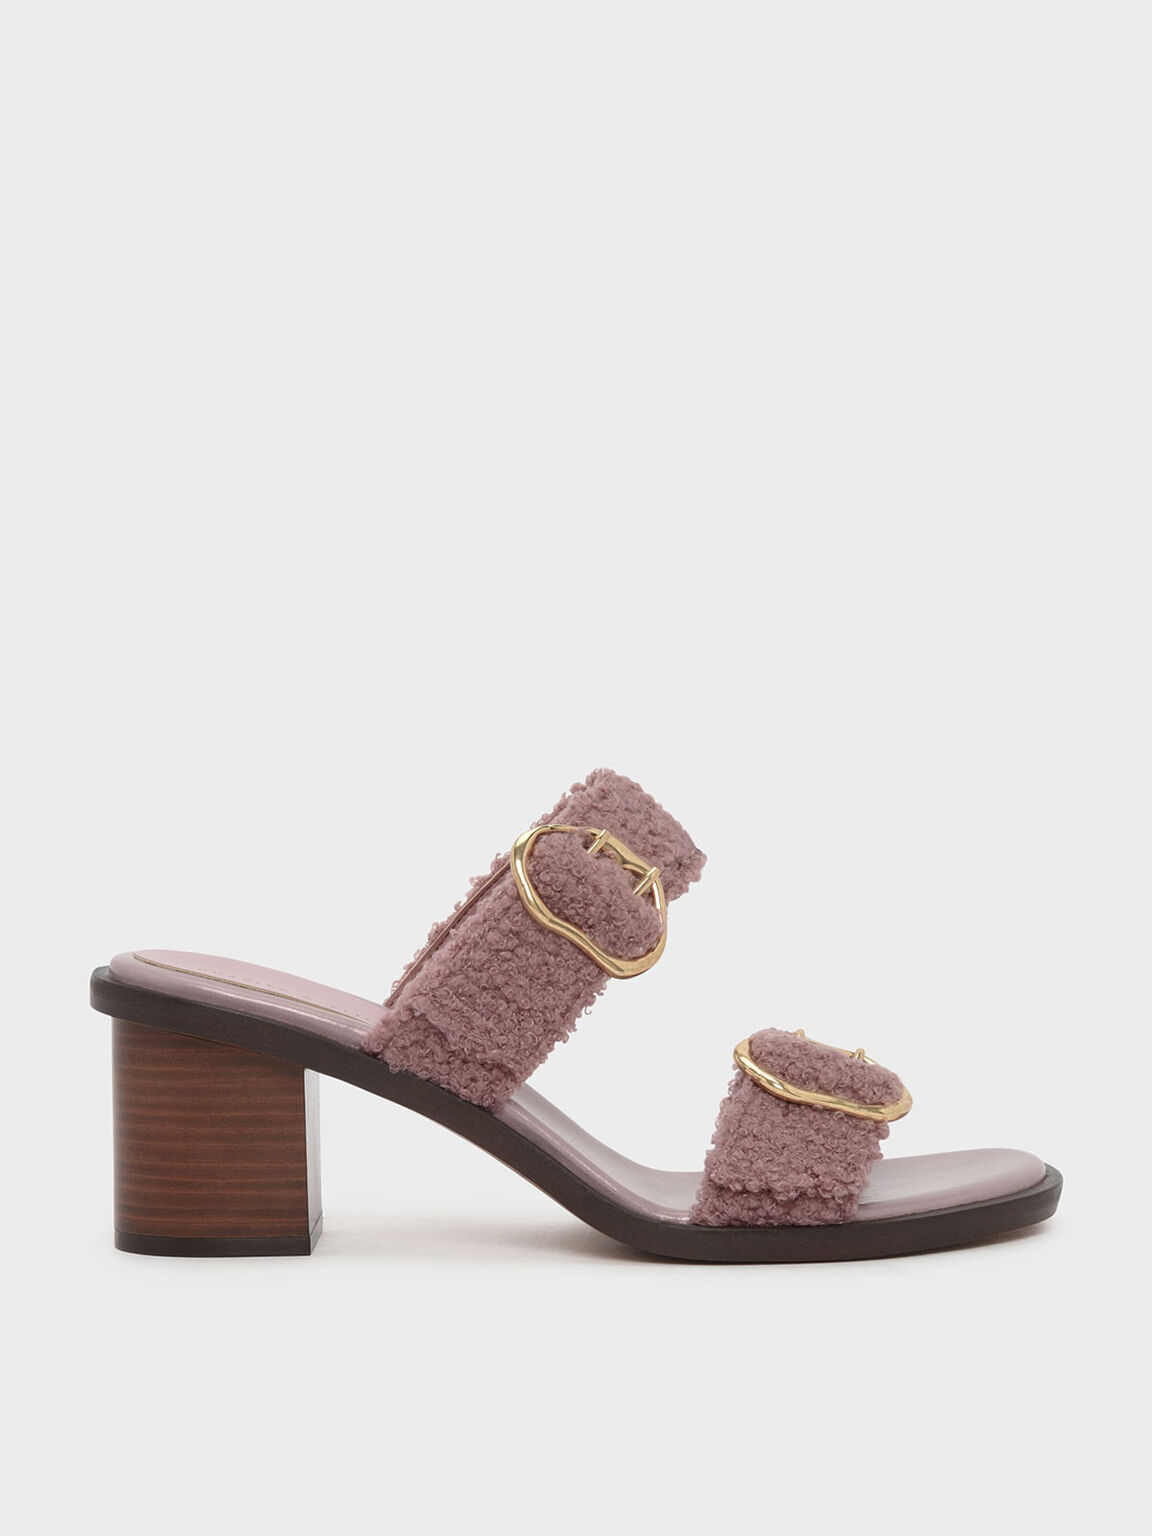 Double Strap Heeled Slip-Ons, Pink, hi-res